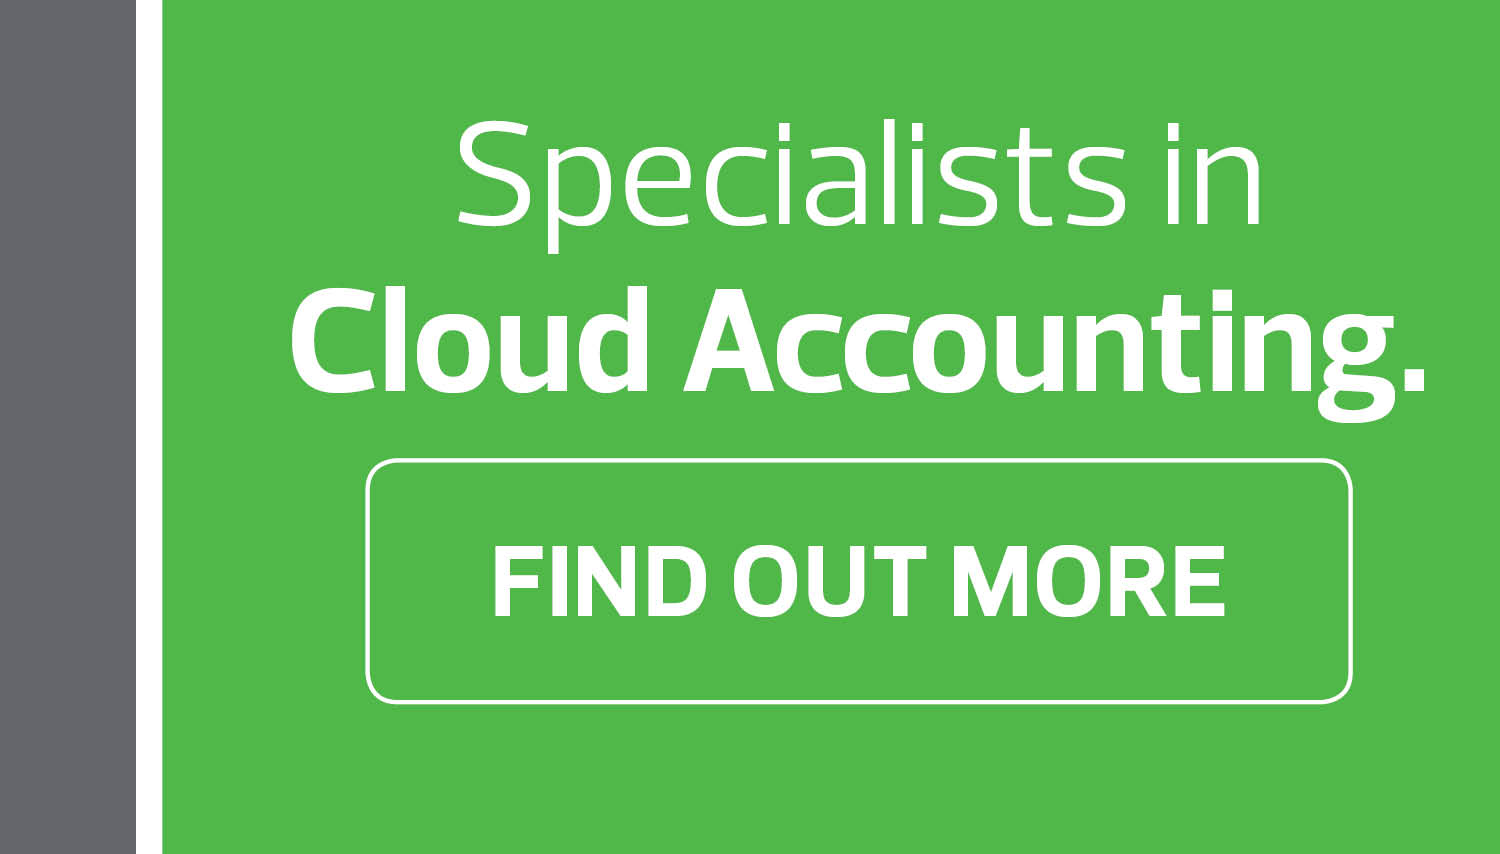 Cloud Accounting - Did you know